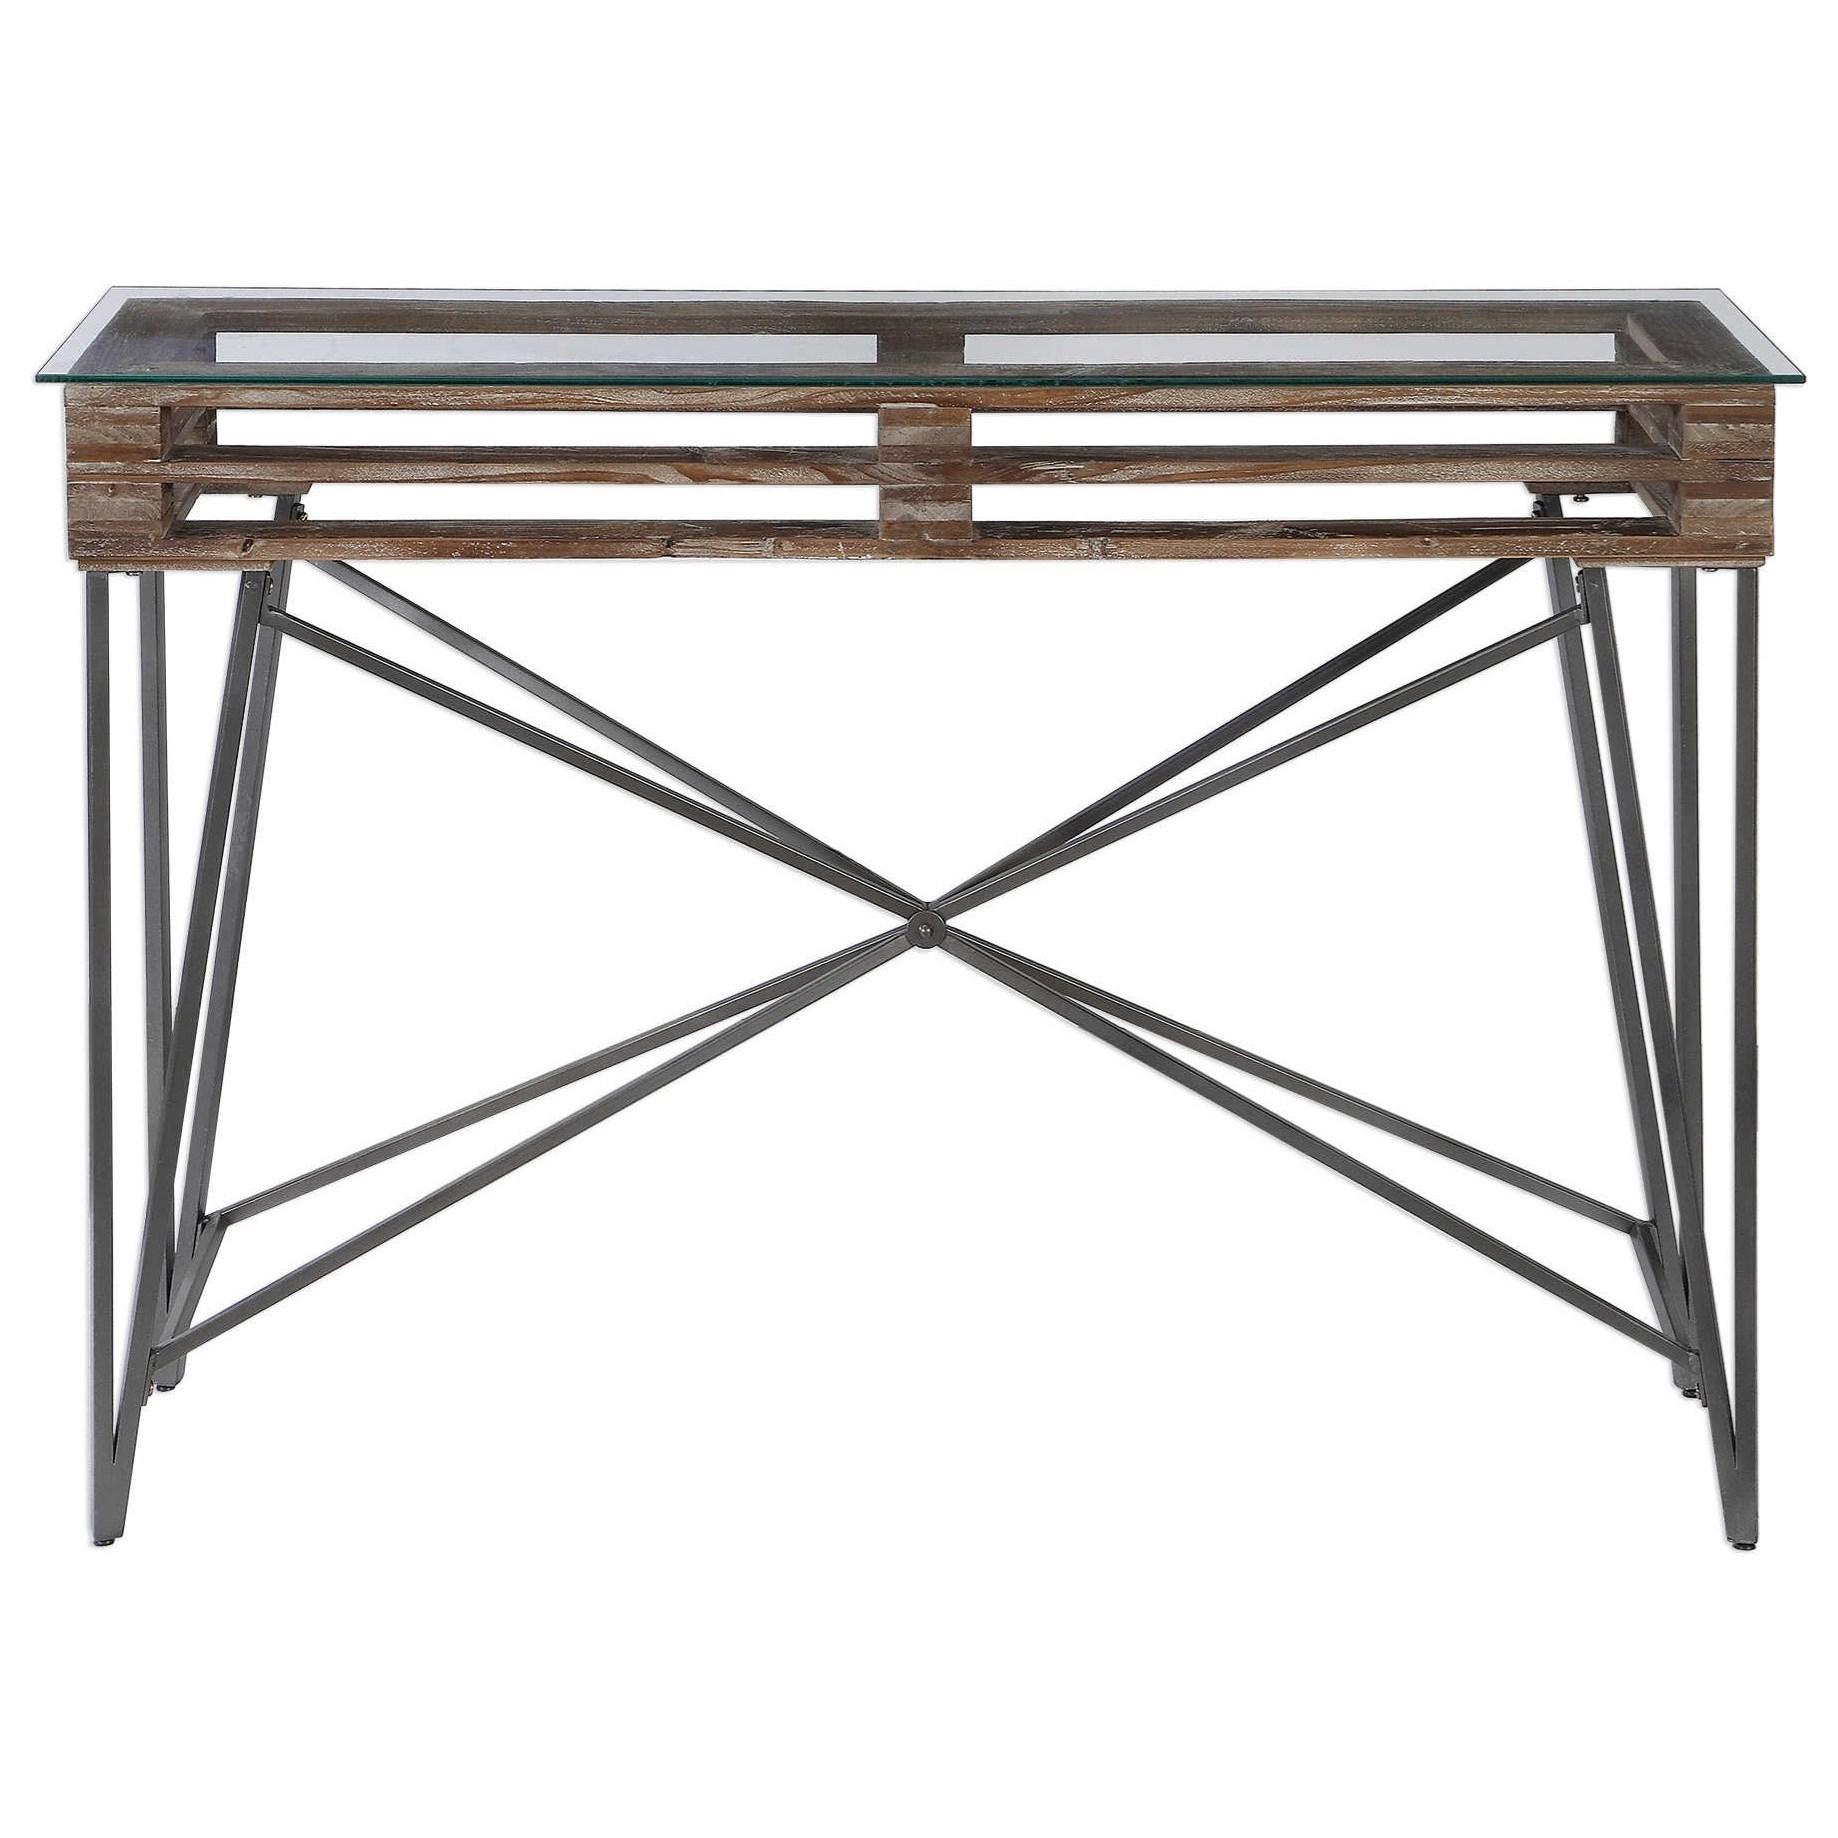 Accent Furniture - Occasional Tables Ryne Industrial Console Table by Uttermost at Factory Direct Furniture